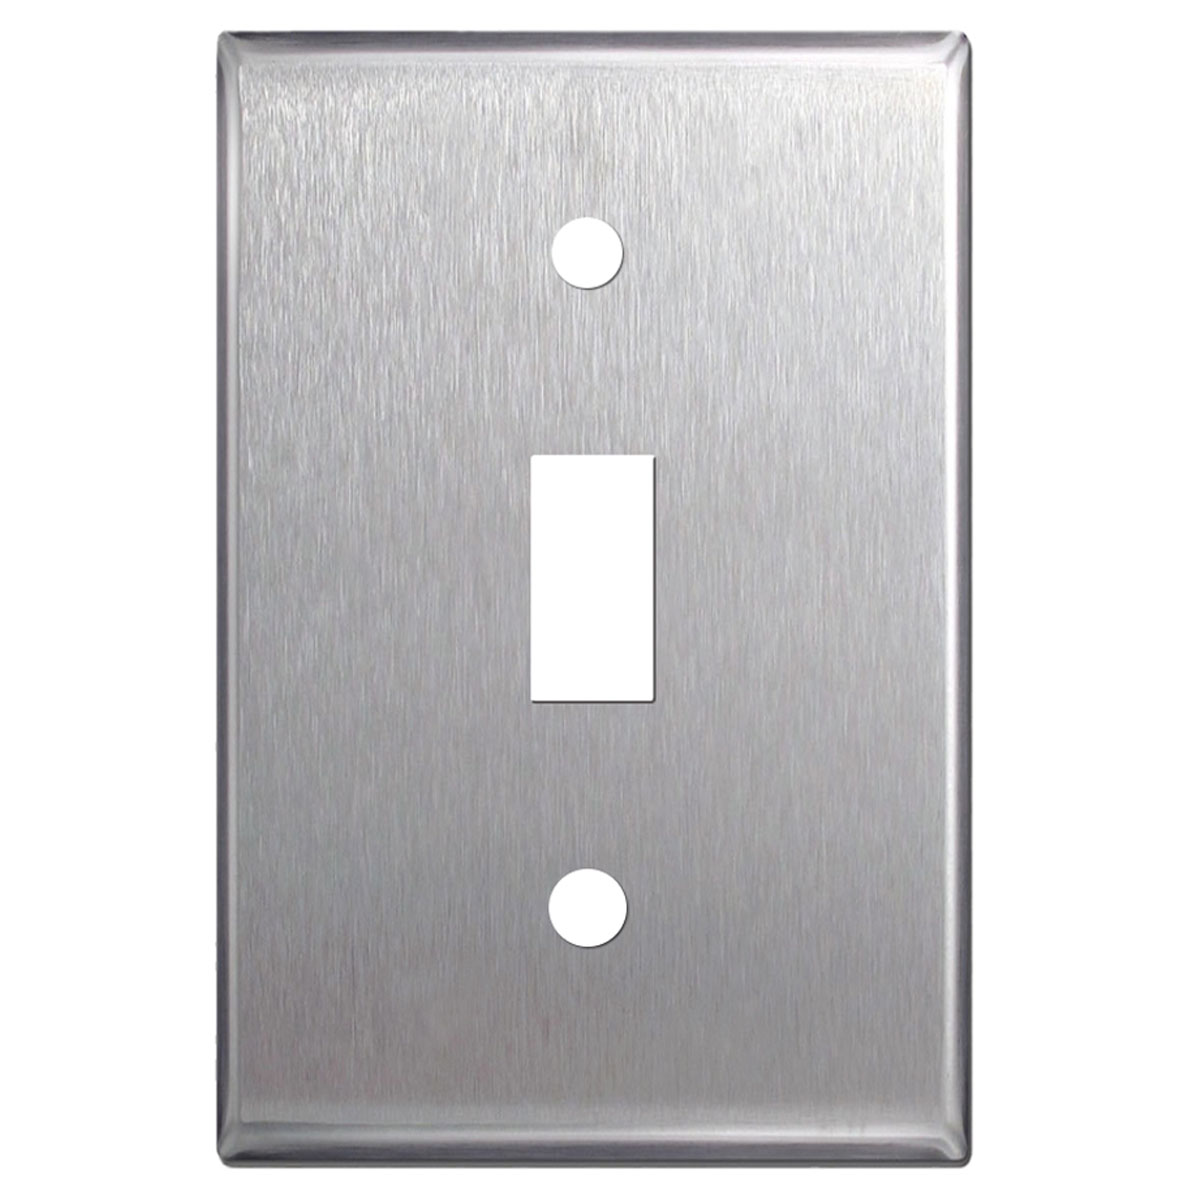 Stainless Steel Wall Plates Light Switch Covers Electriduct